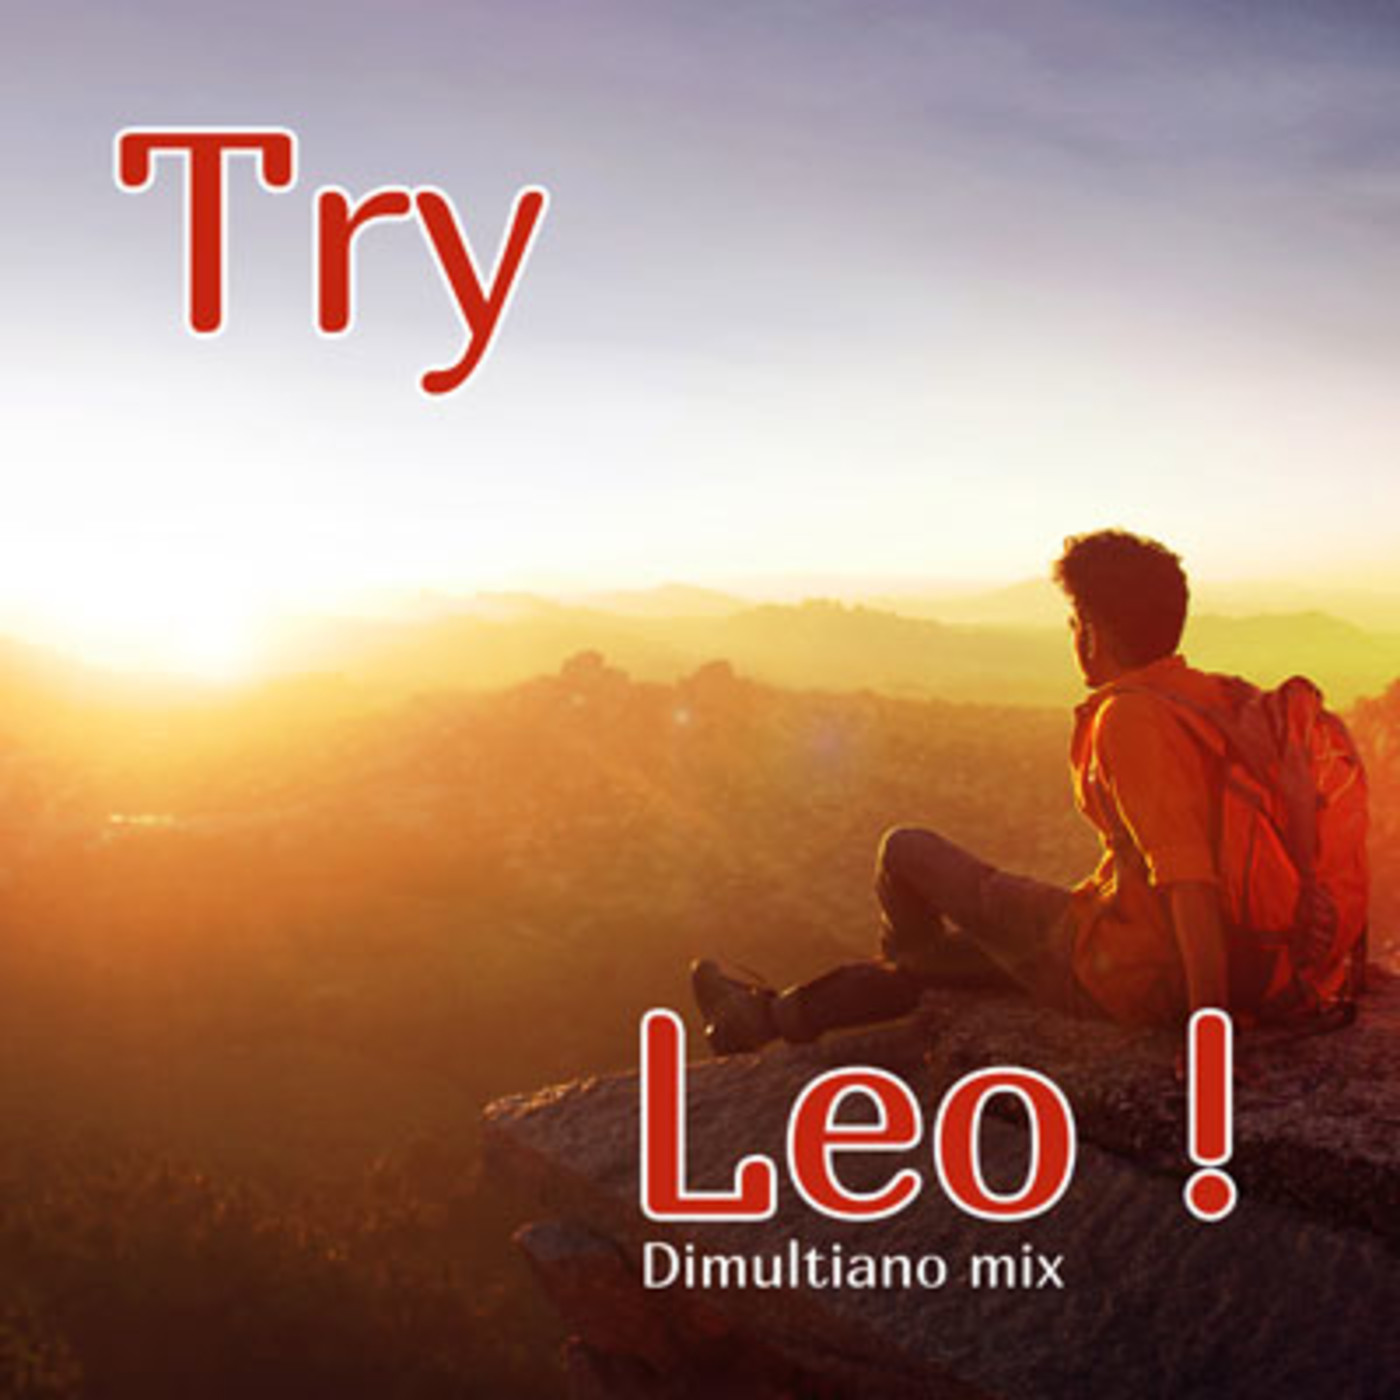 Dimultiano mix - Try Leo